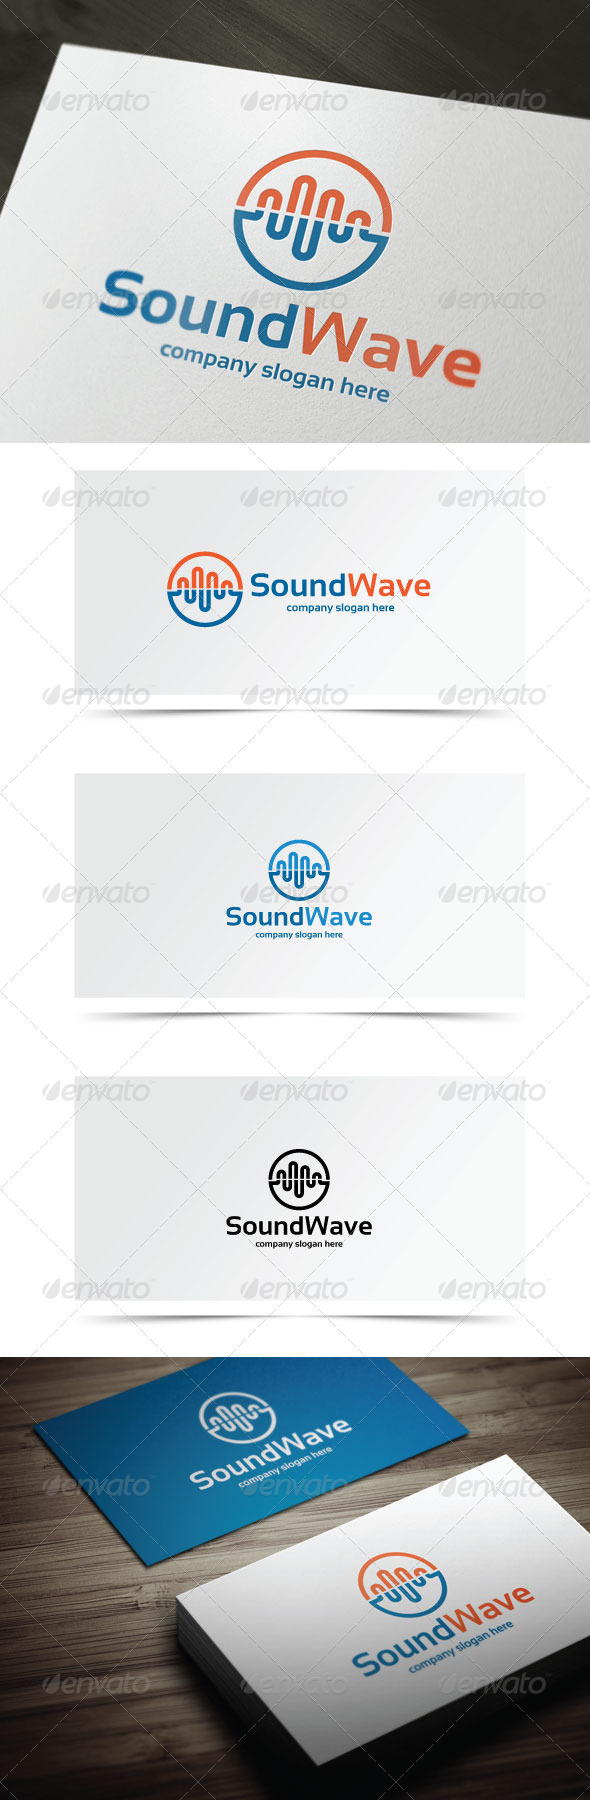 Sound Wave - Symbols Logo Templates